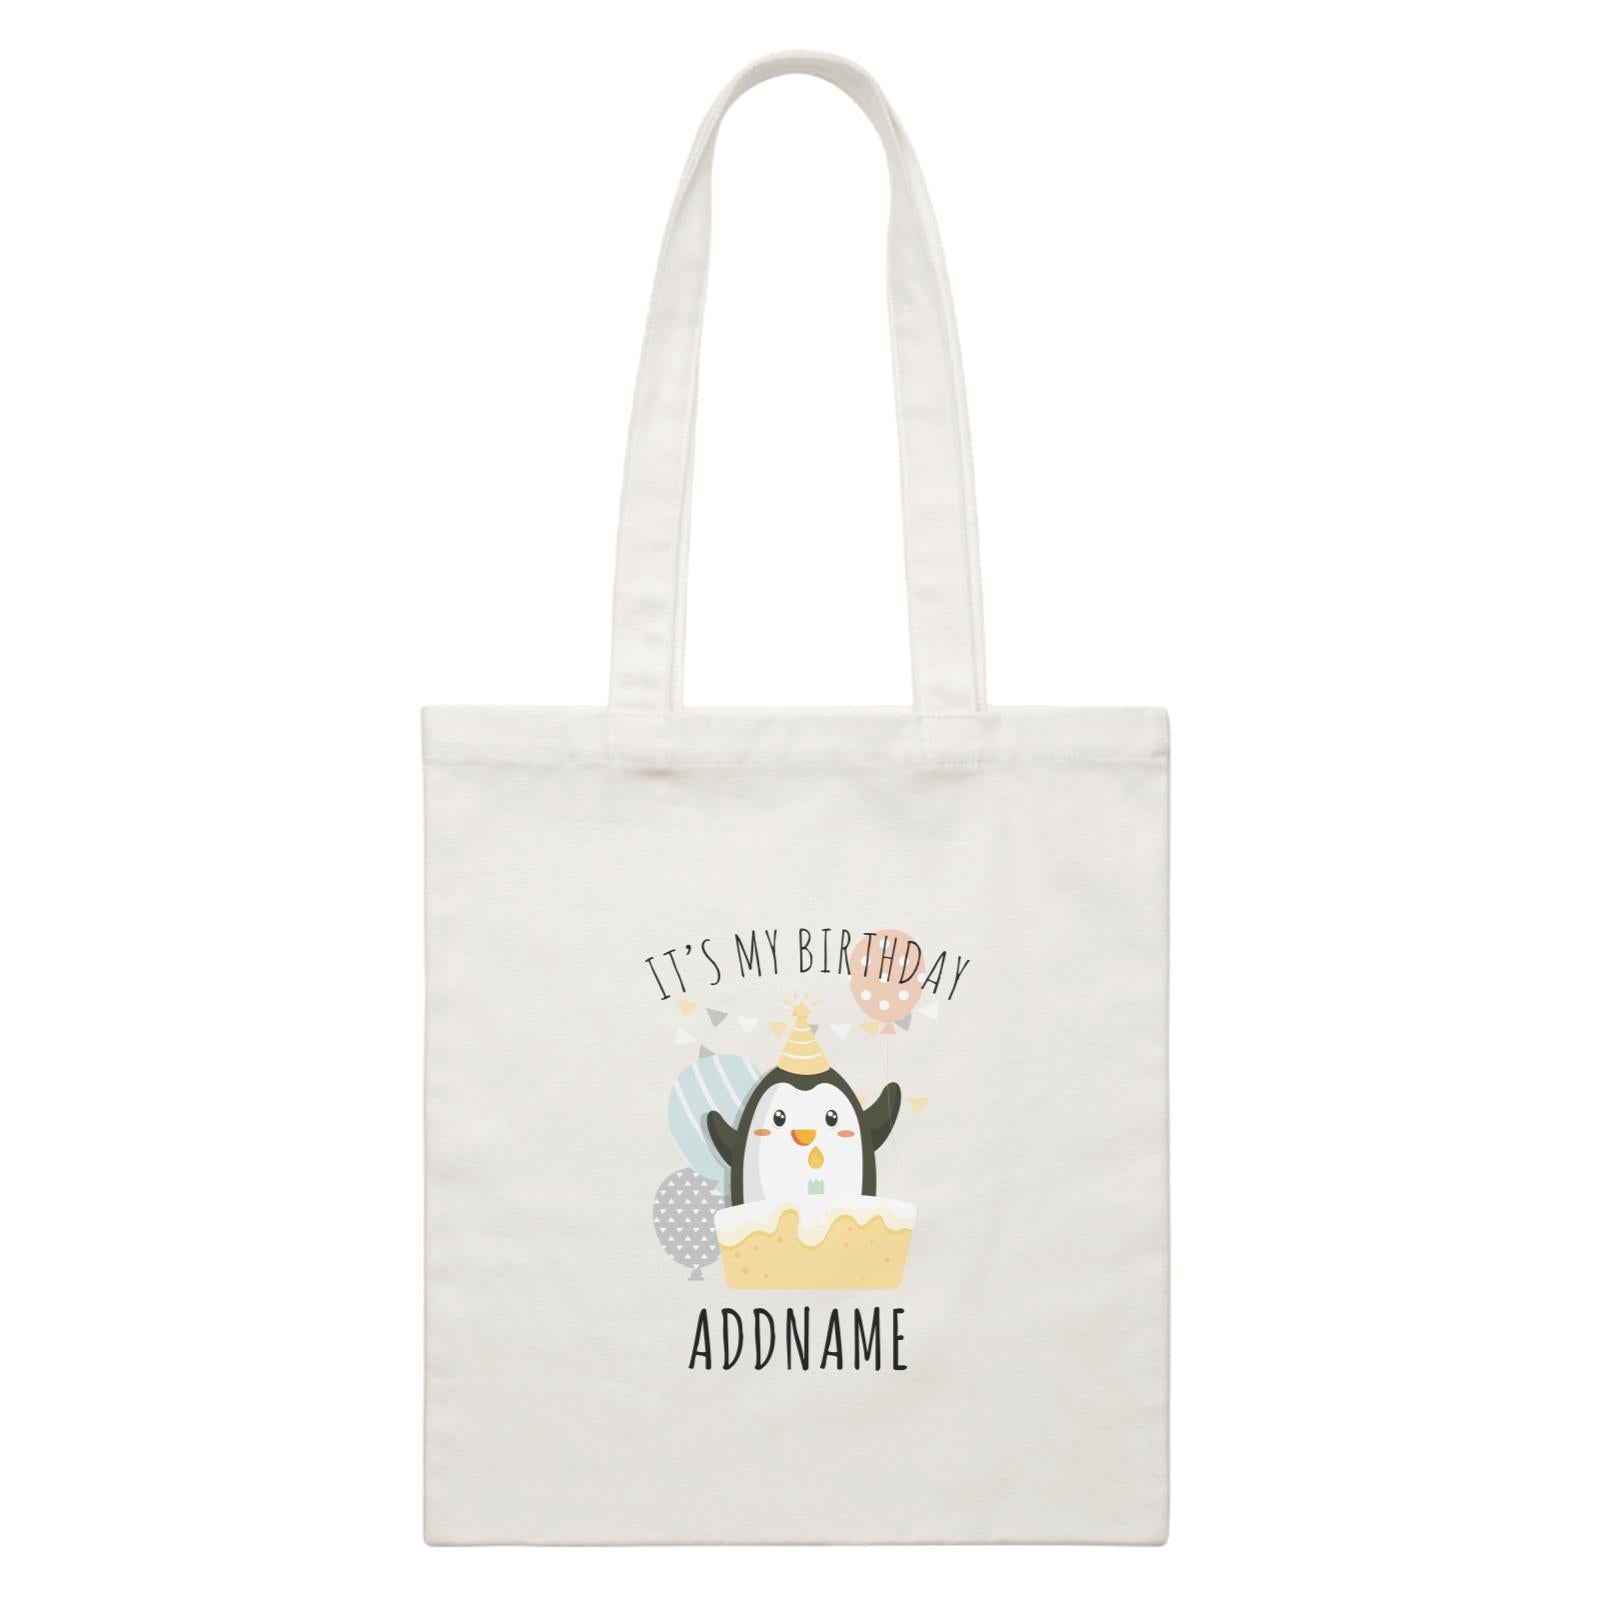 Birthday Cute Penguin And Cake It's My Birthday Addname White Canvas Bag